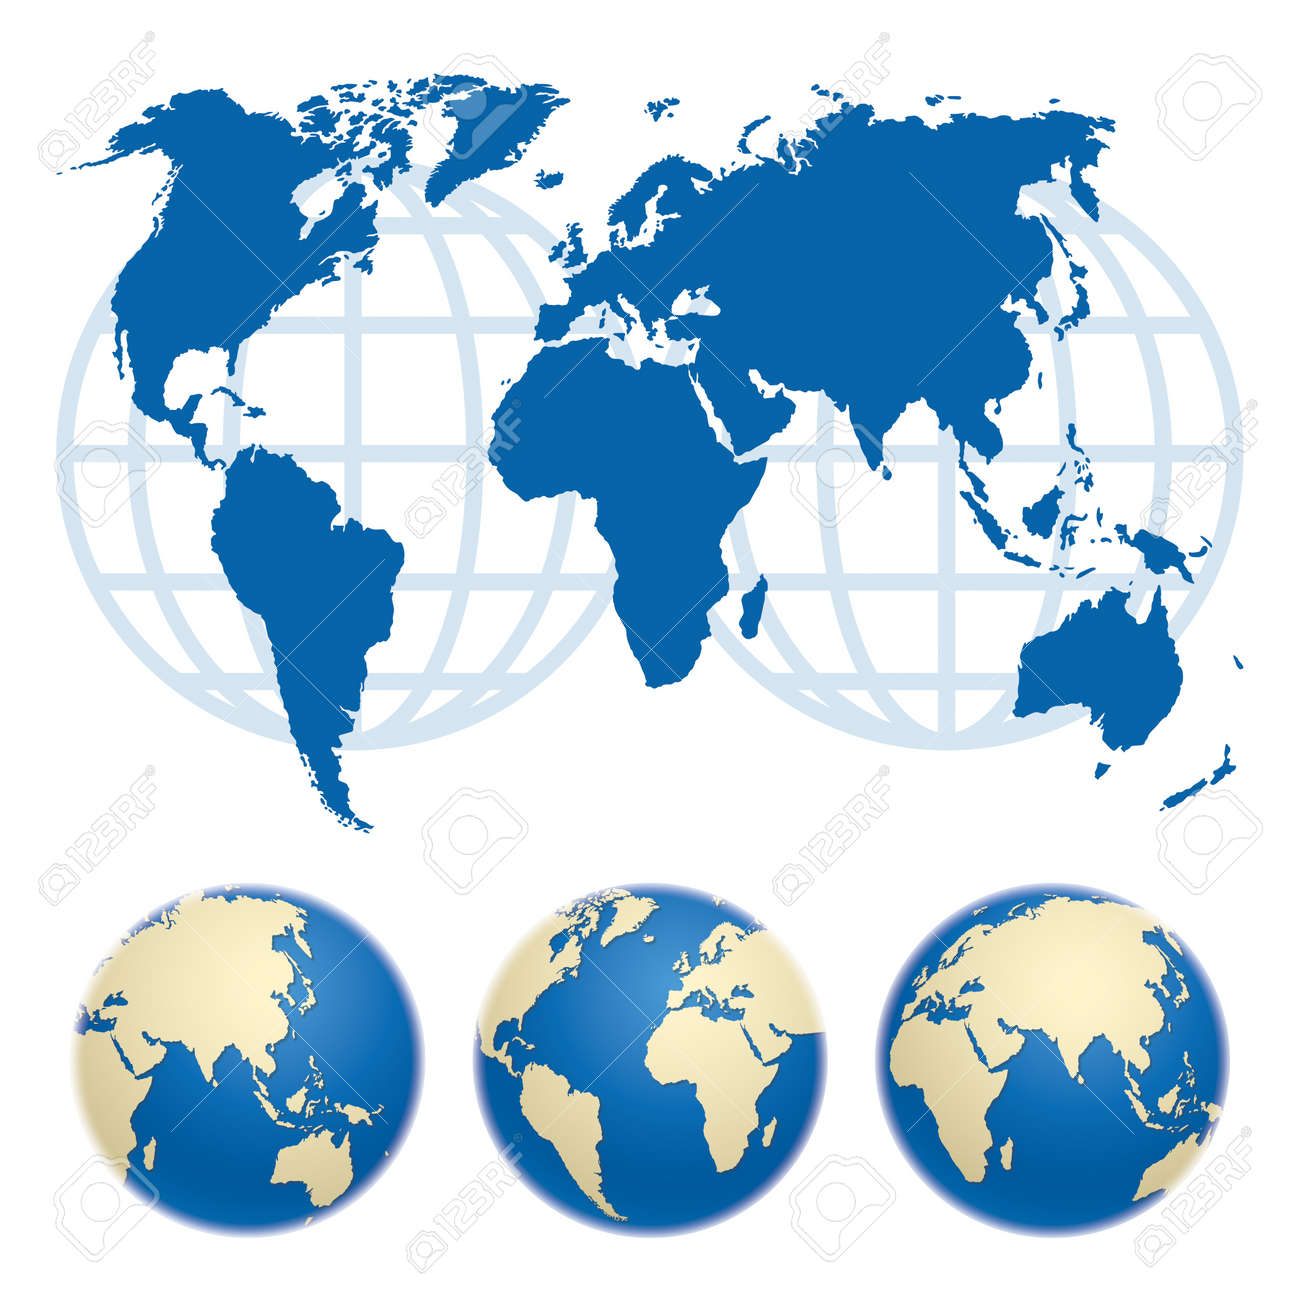 Map Of The World Map Source Public Domain Http Www Lib Utexas